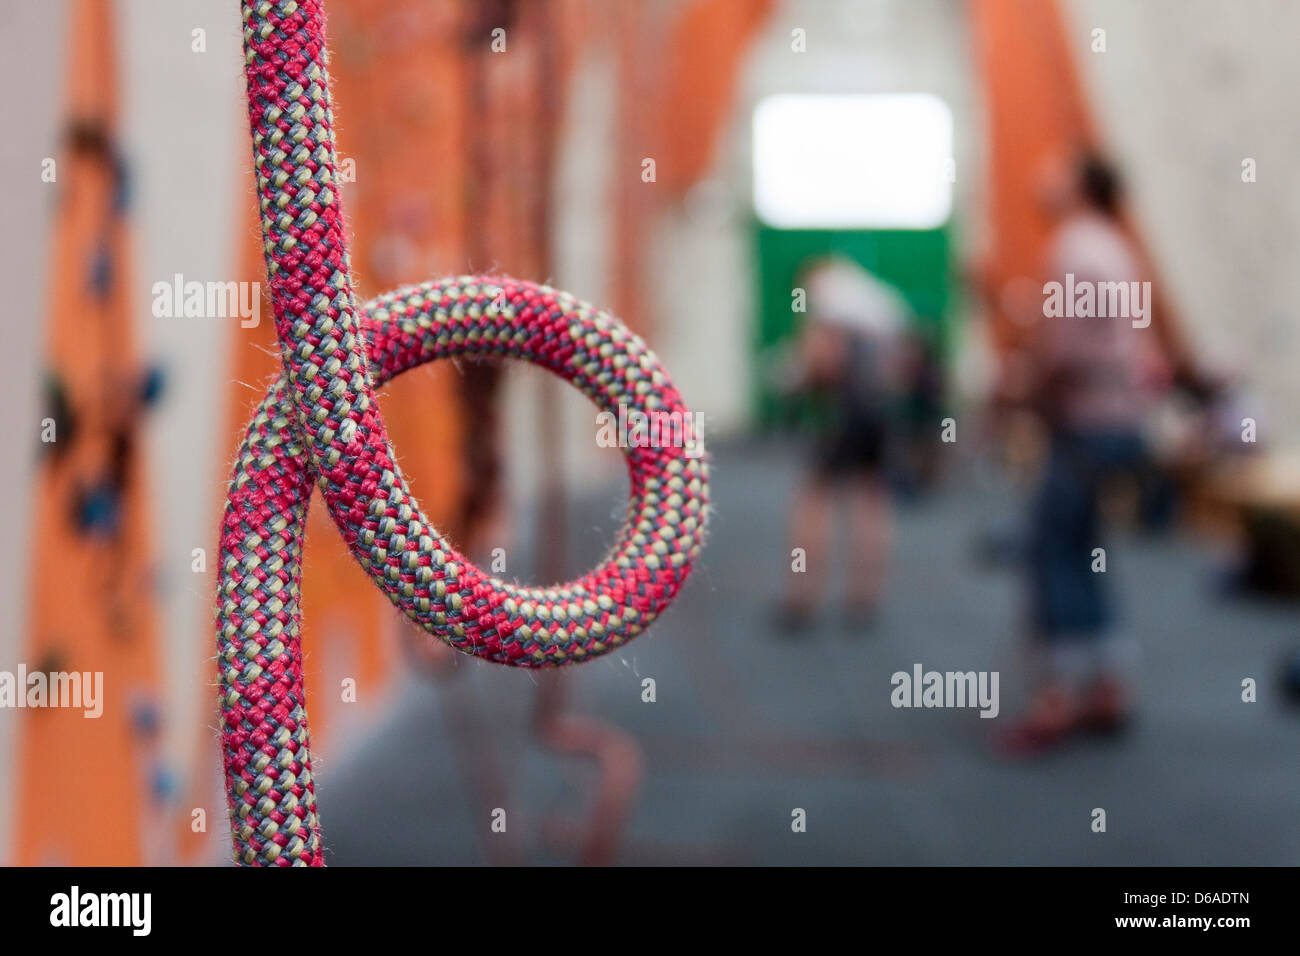 Detail of climbing rope on an indoor climbing wall. - Stock Image